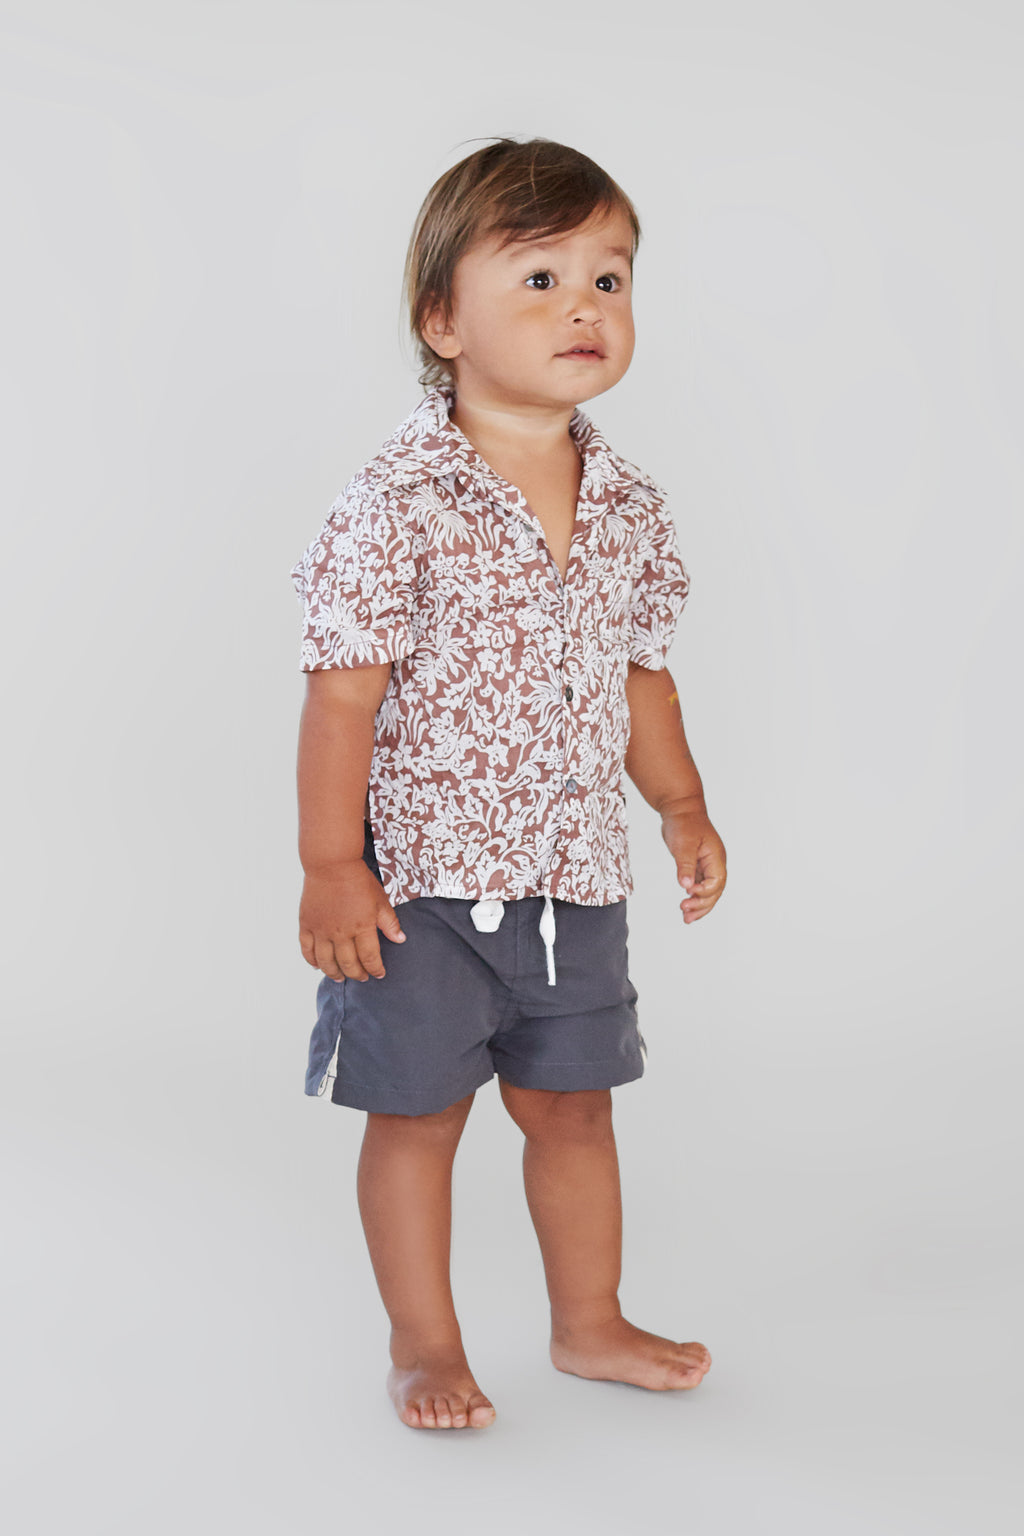 ACACIA KIDS Aloha Shirt | Brown Batik